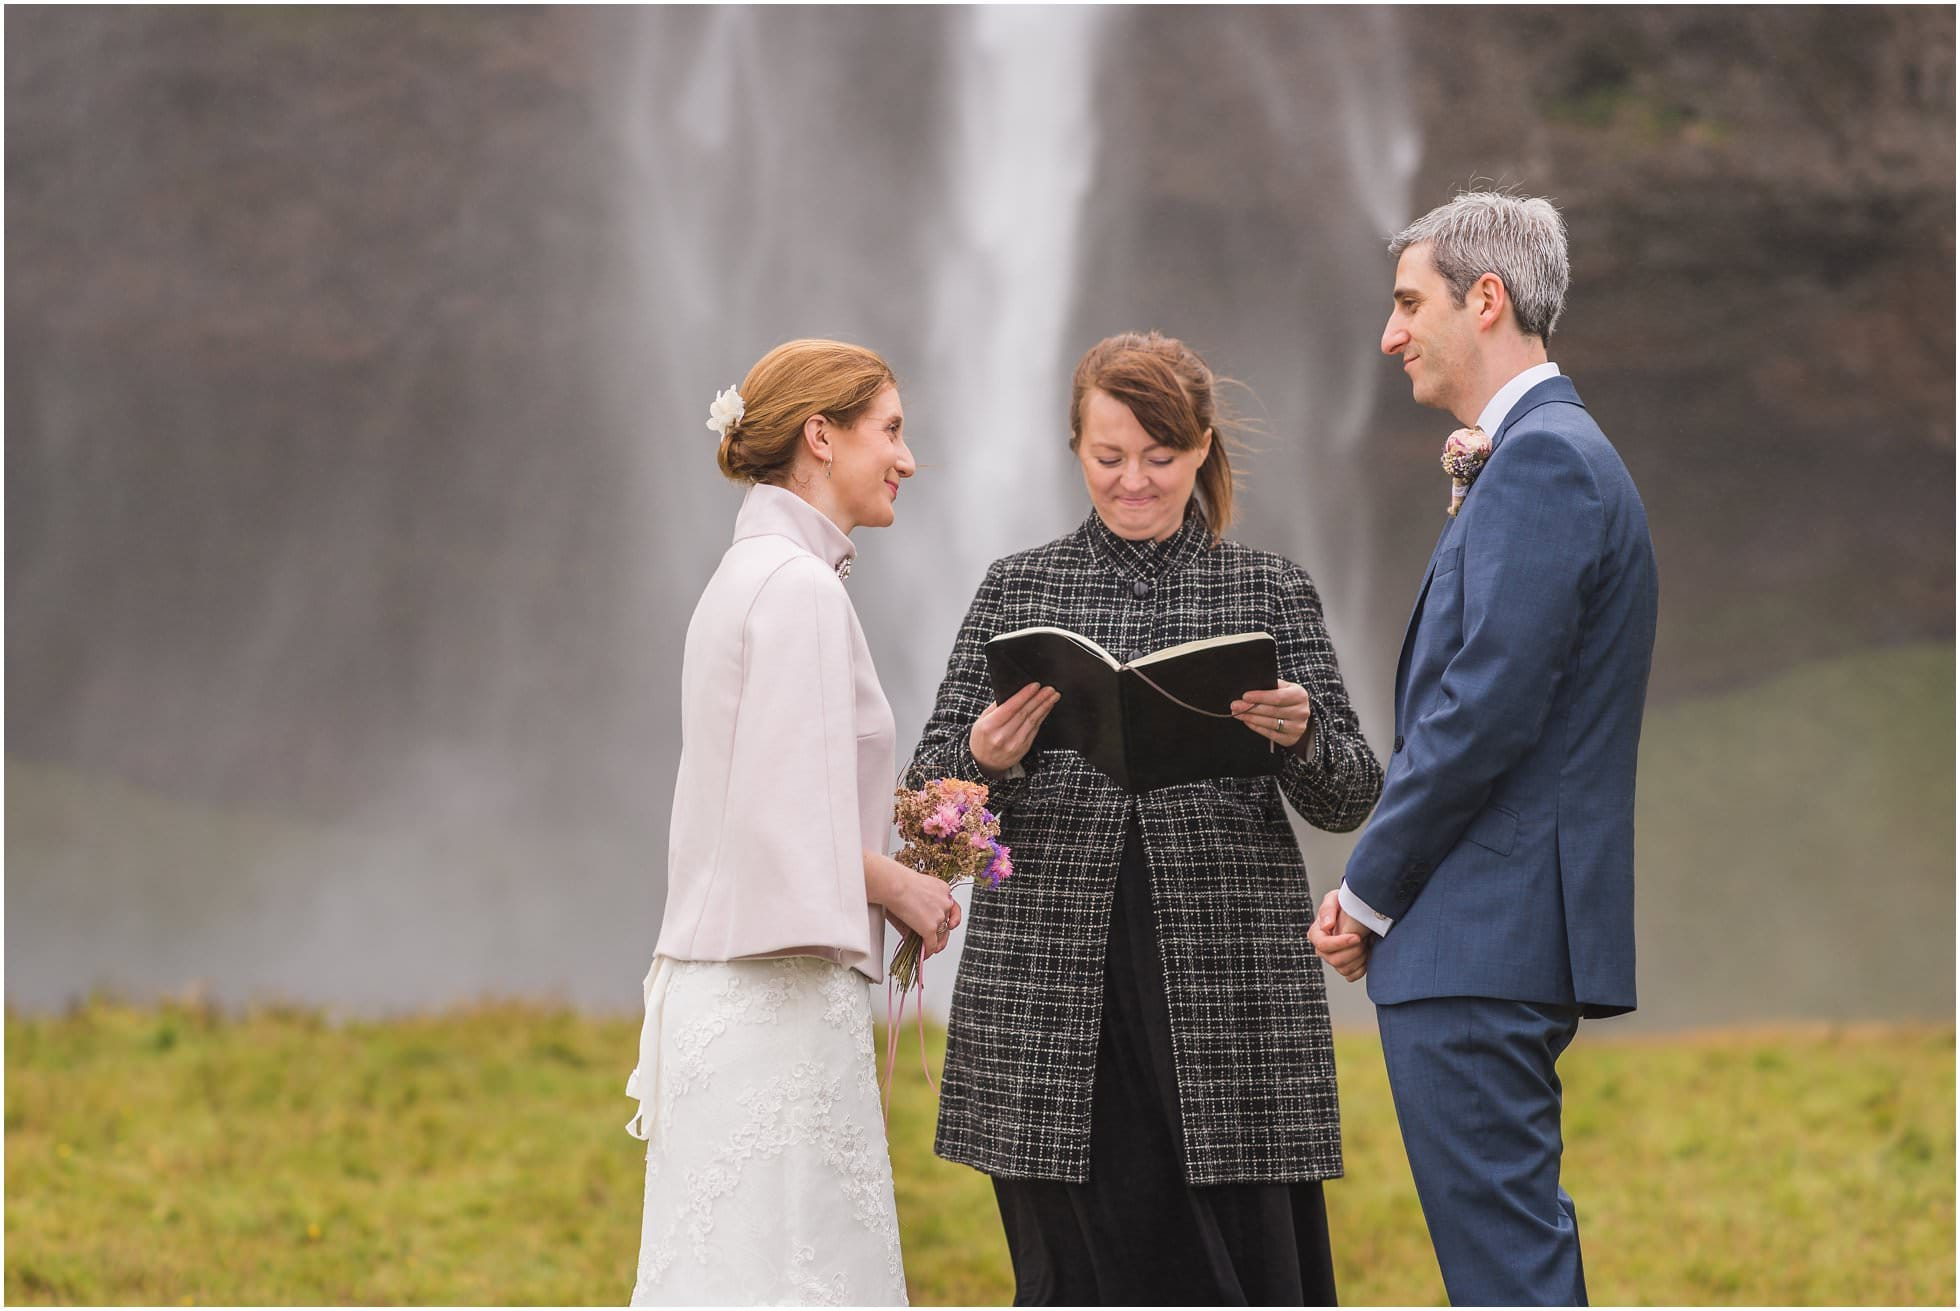 Iceland Elopement ceremony at Seljalandsfoss waterfall